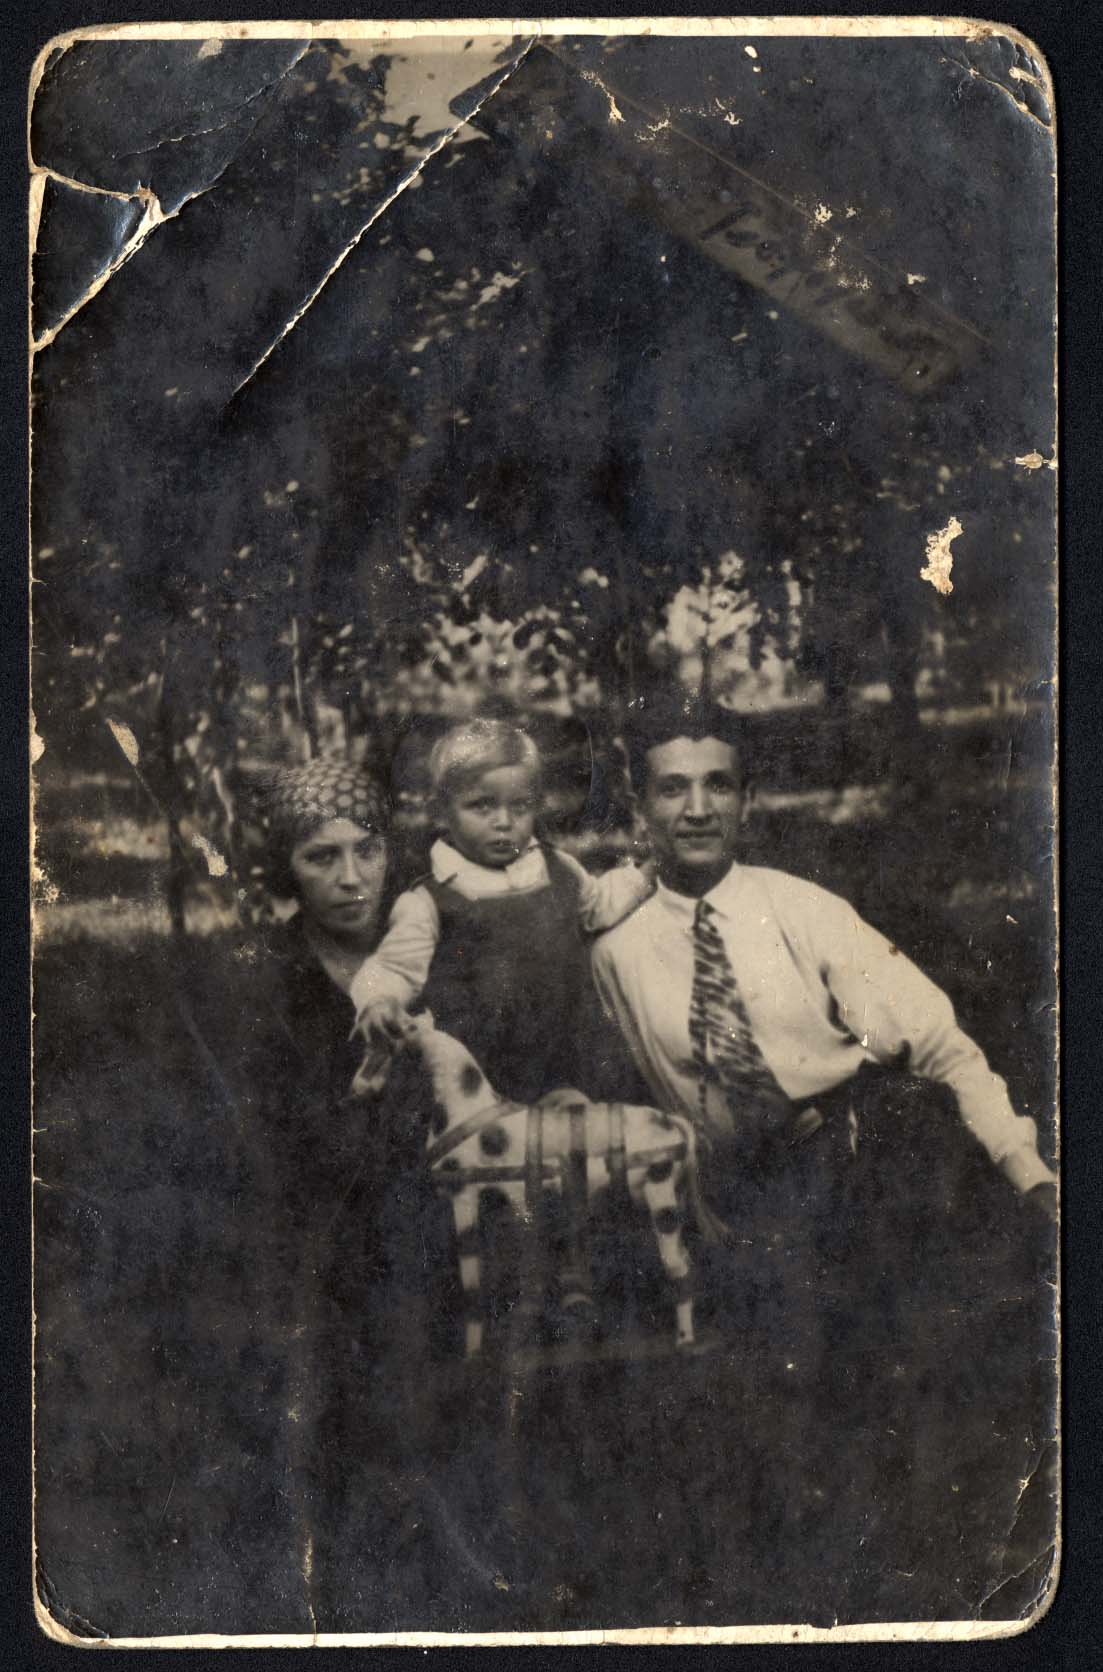 Abraham (Abramek) Koplowicz with his mother Johet-Gitel and his father Mendel